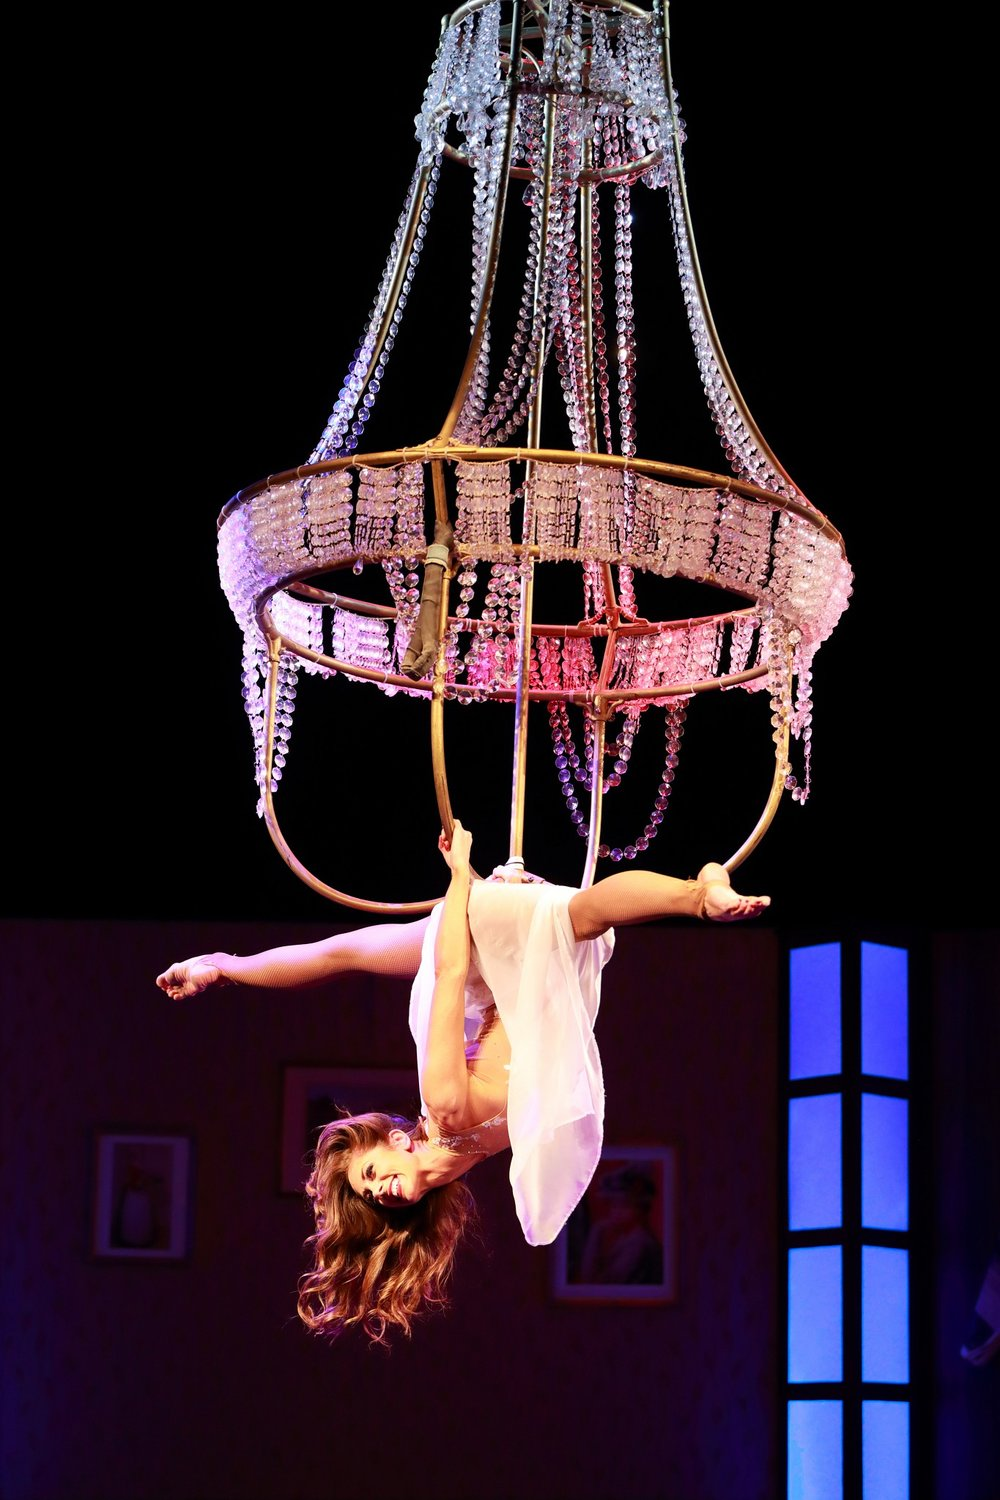 Flying Chandelier Performance - Kronleuchter Showact - Air Candy dassupertalent luftartistin am Kronleuchter